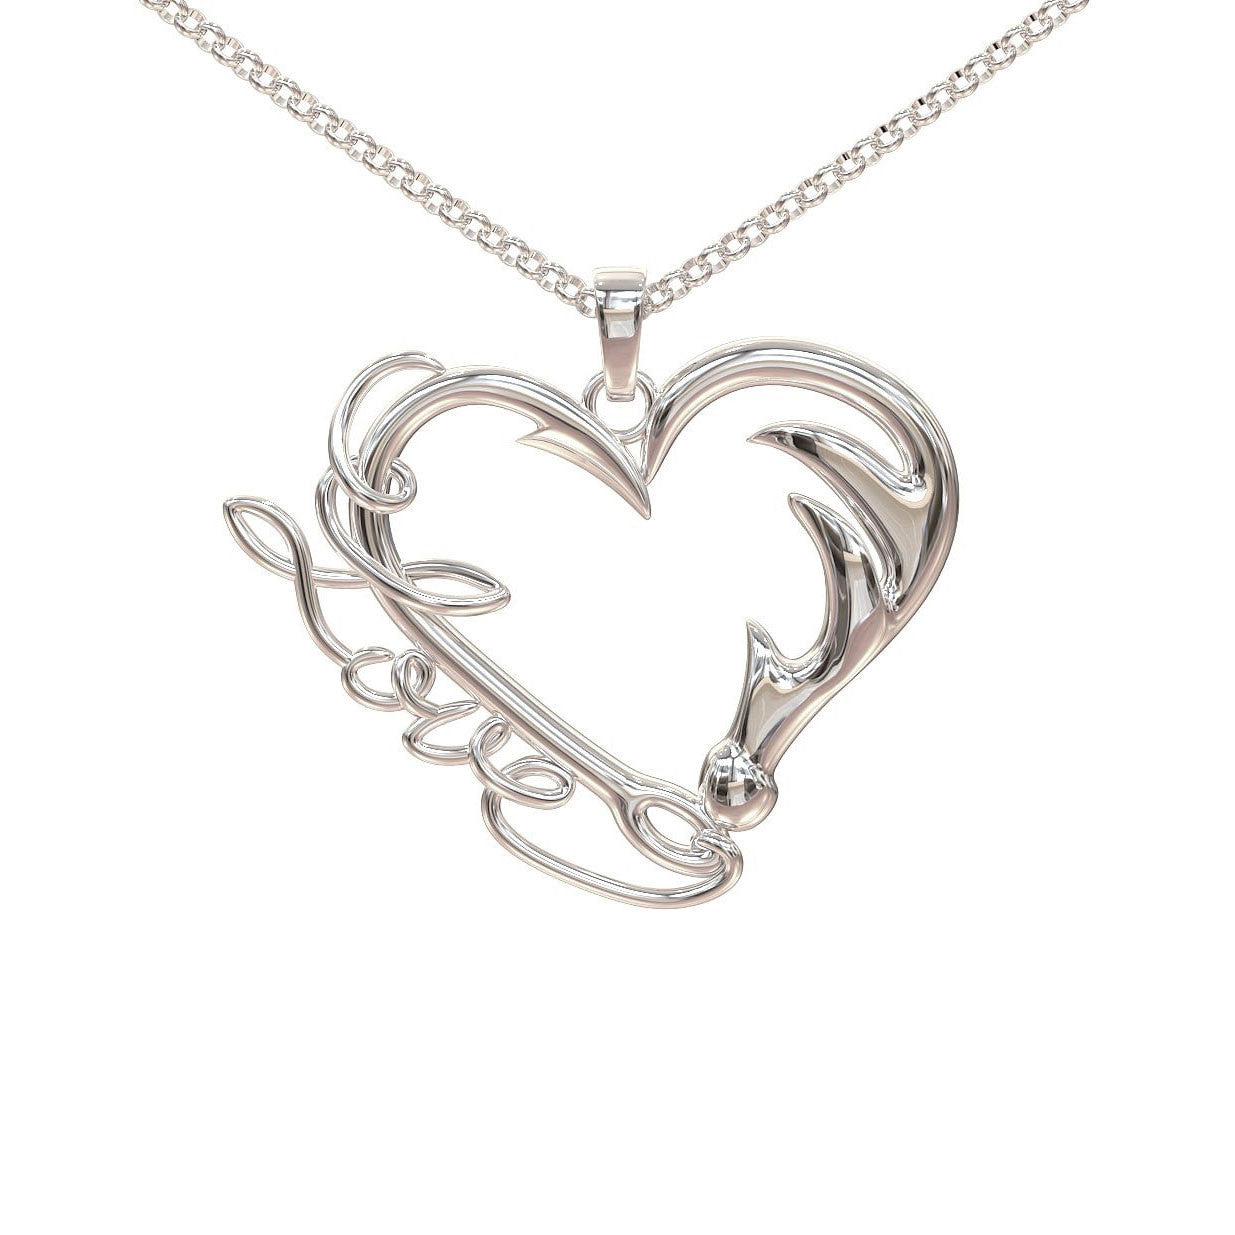 Fishing and Hunting Love Pendant